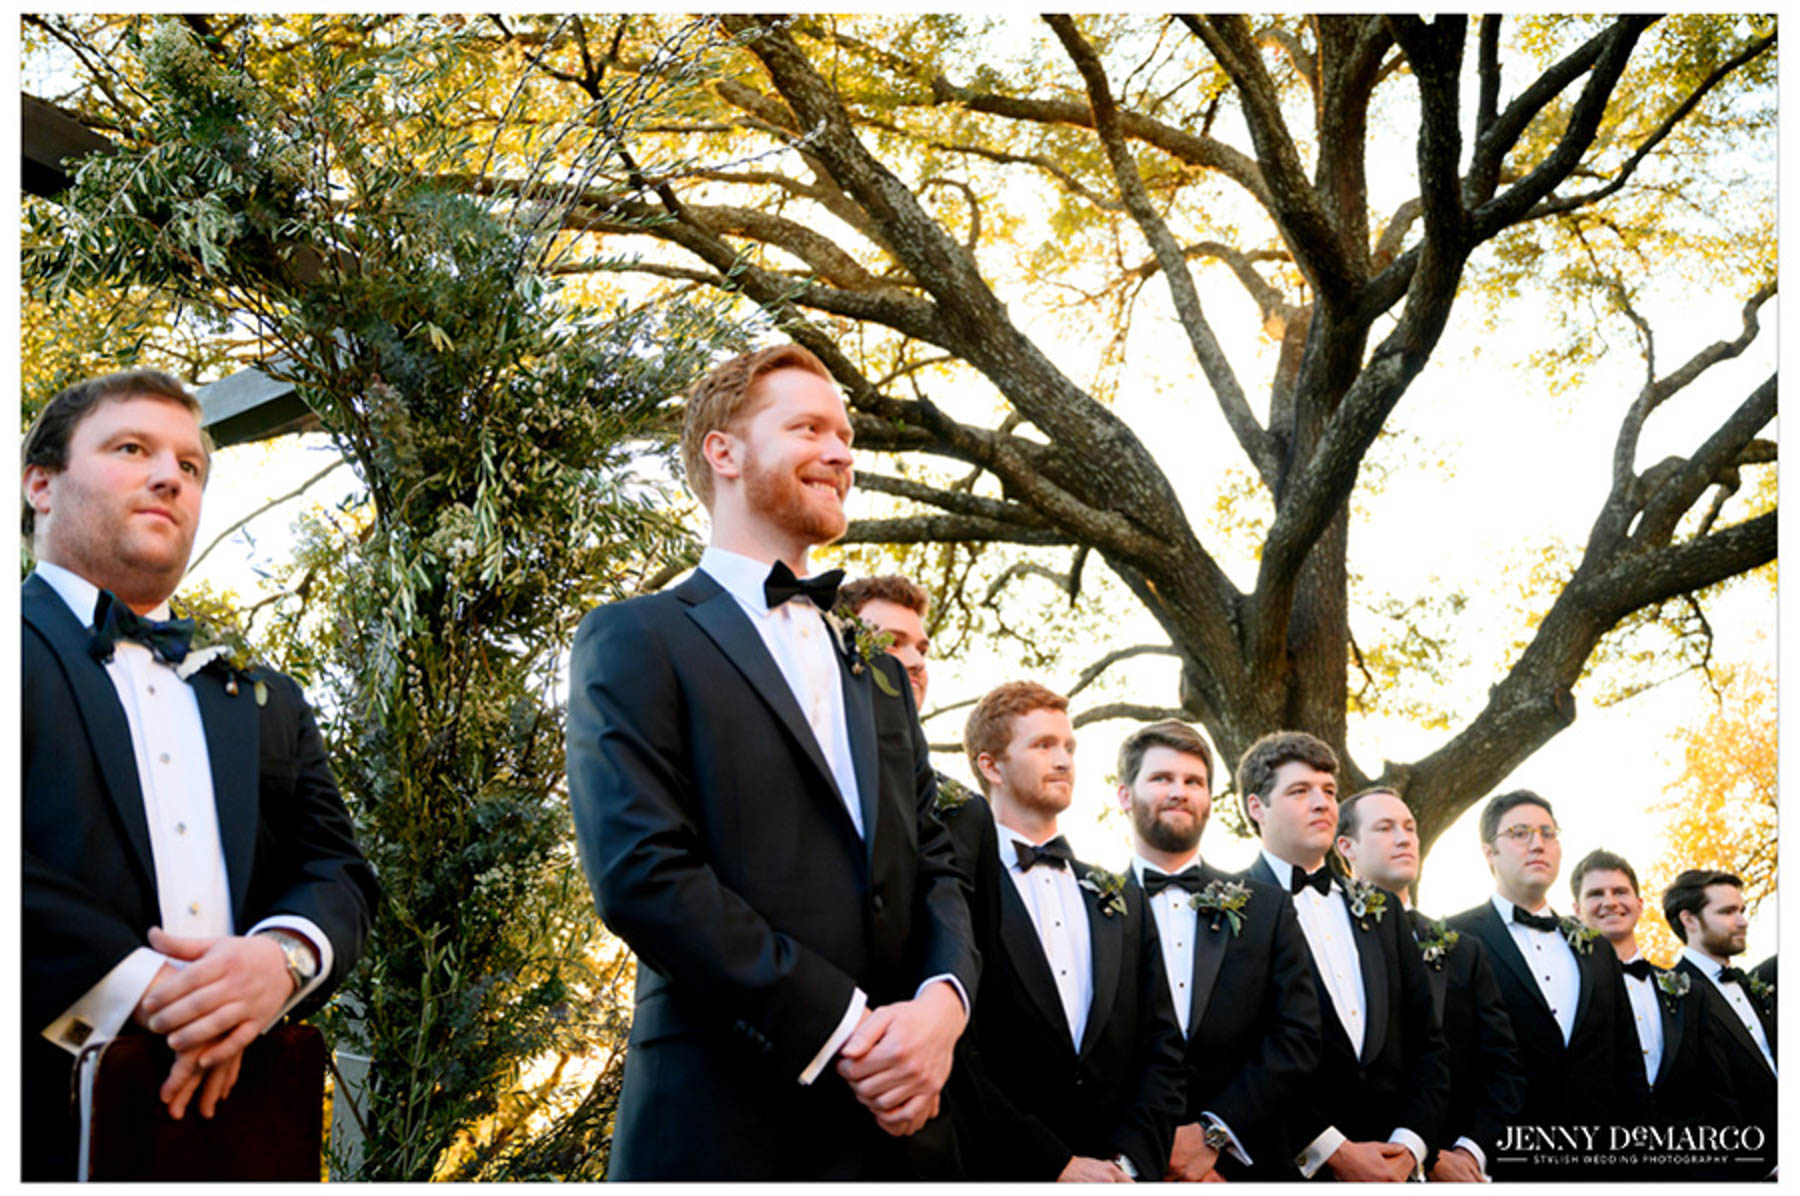 groom and groomsmen wait in excitement during the ceremony